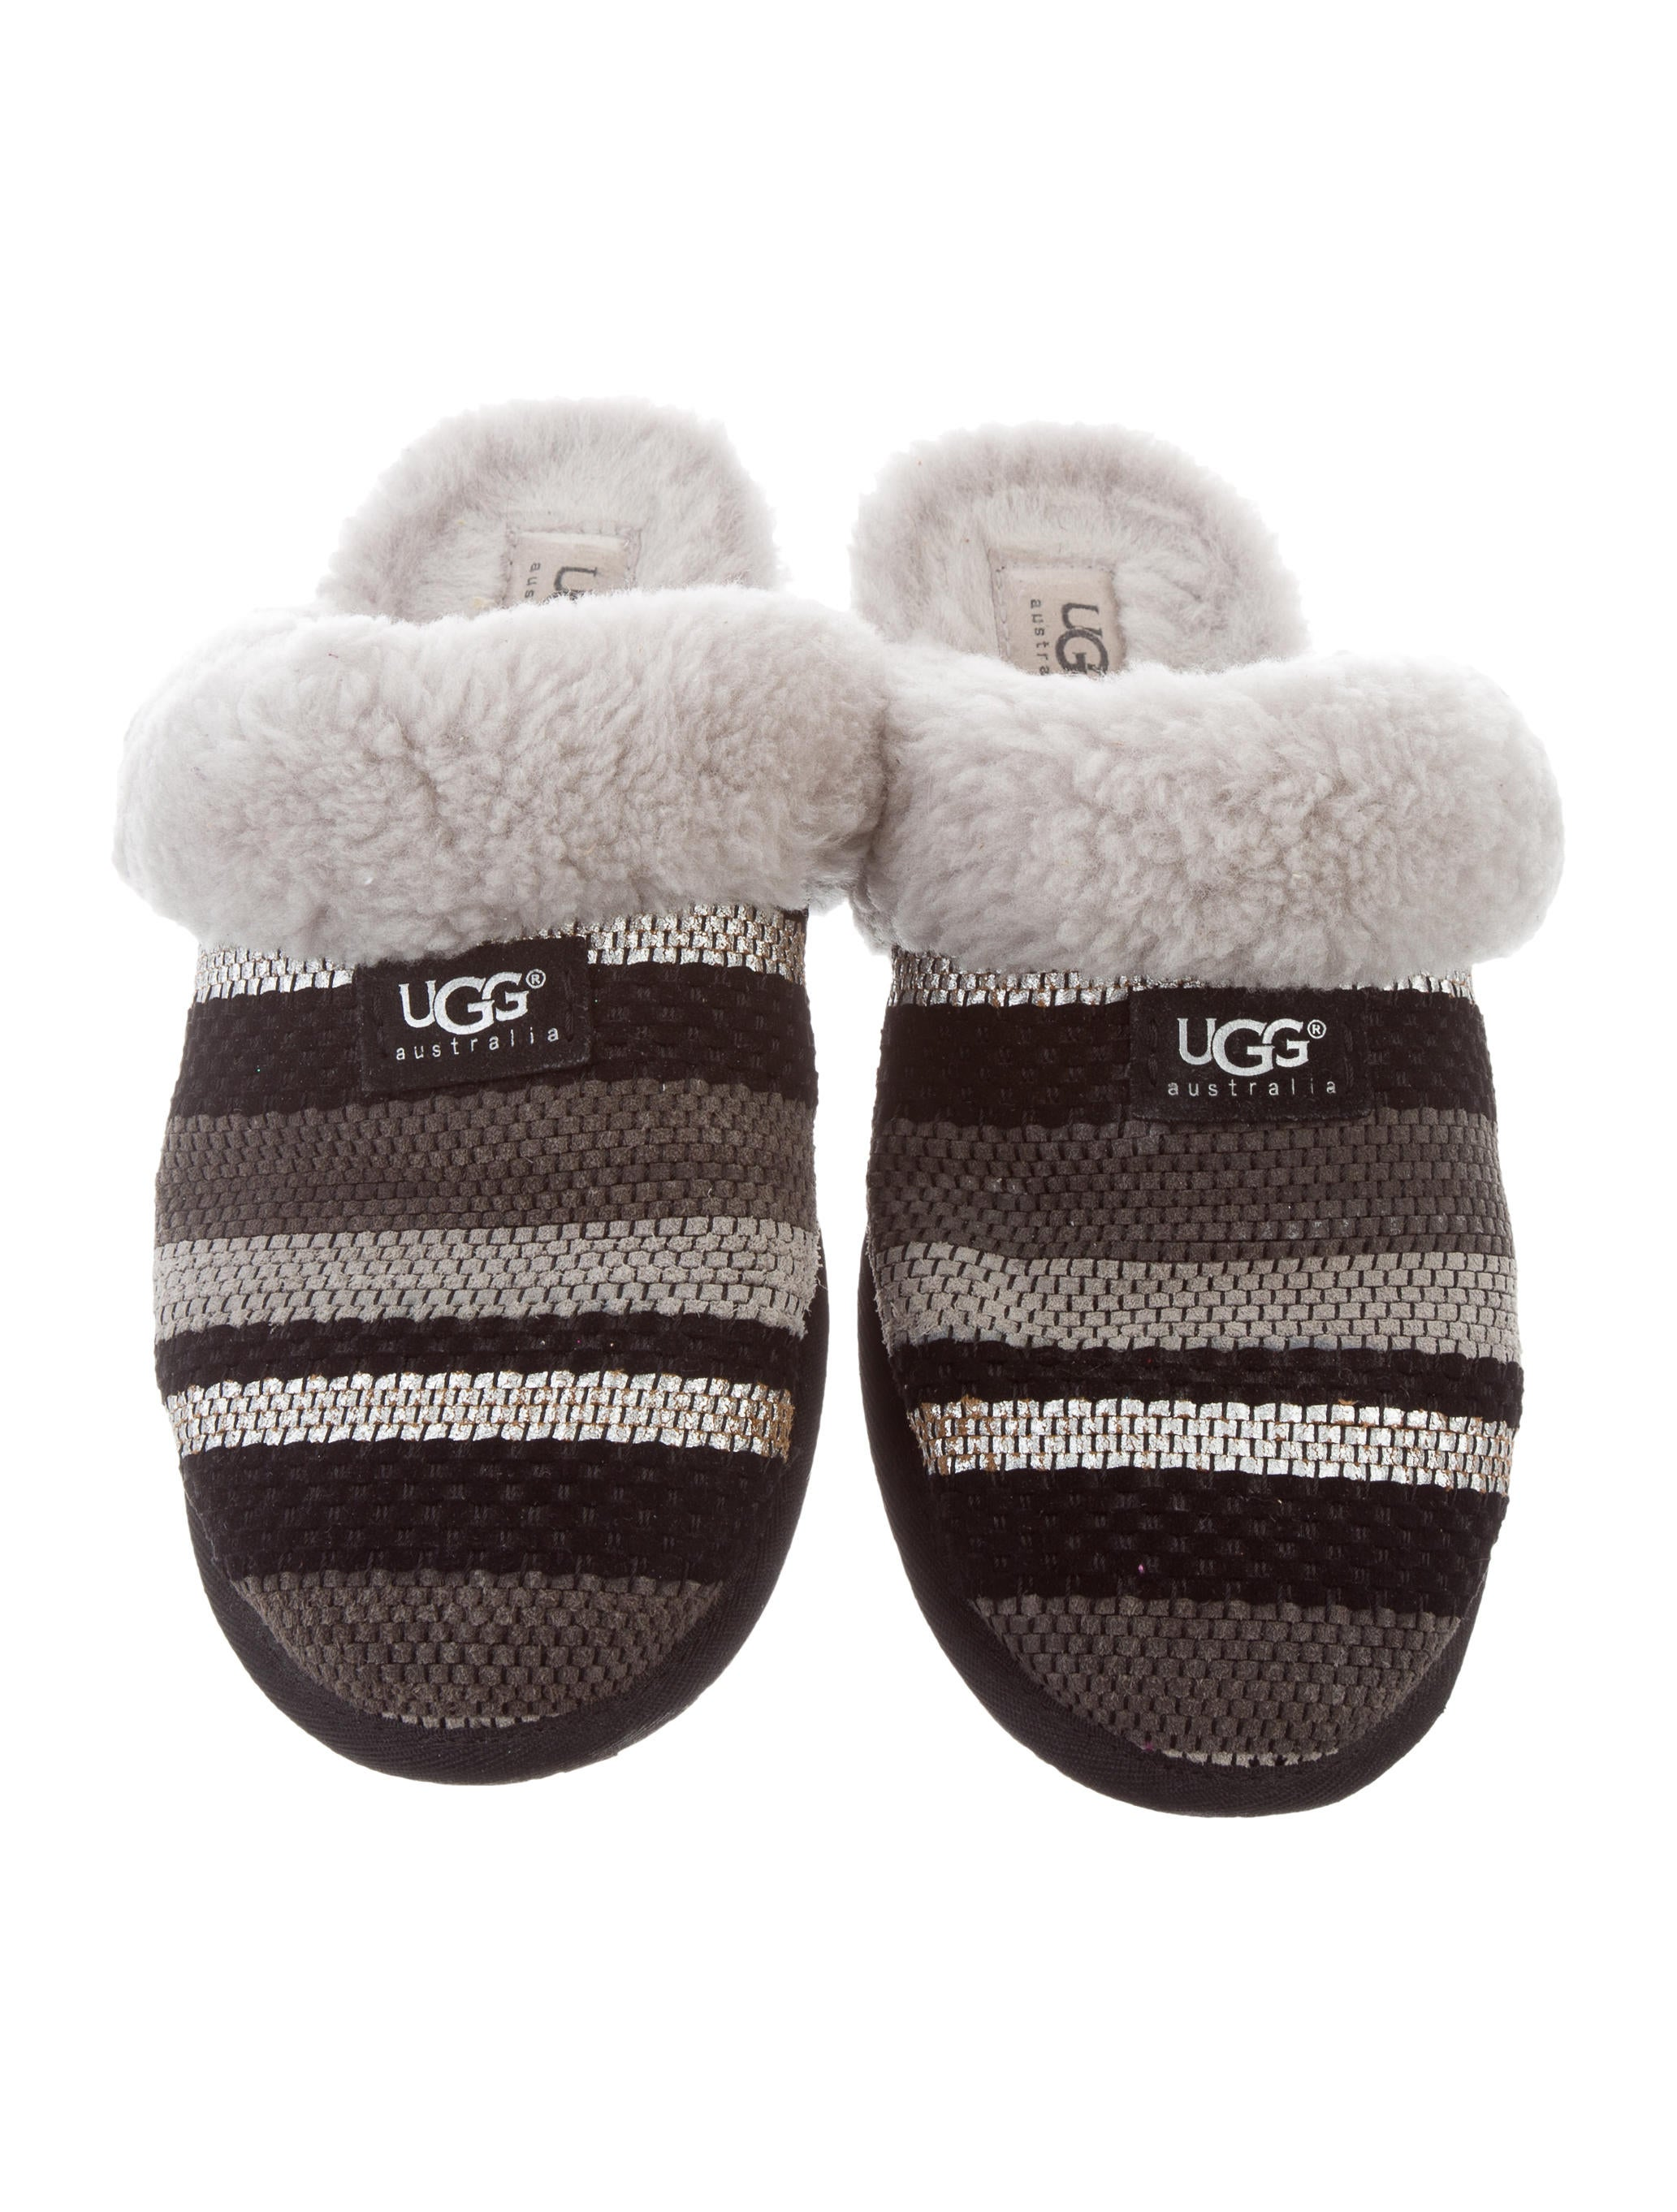 UGG Australia Woven Shearling Slippers cheap sale 2014 new uFW8sSQN4